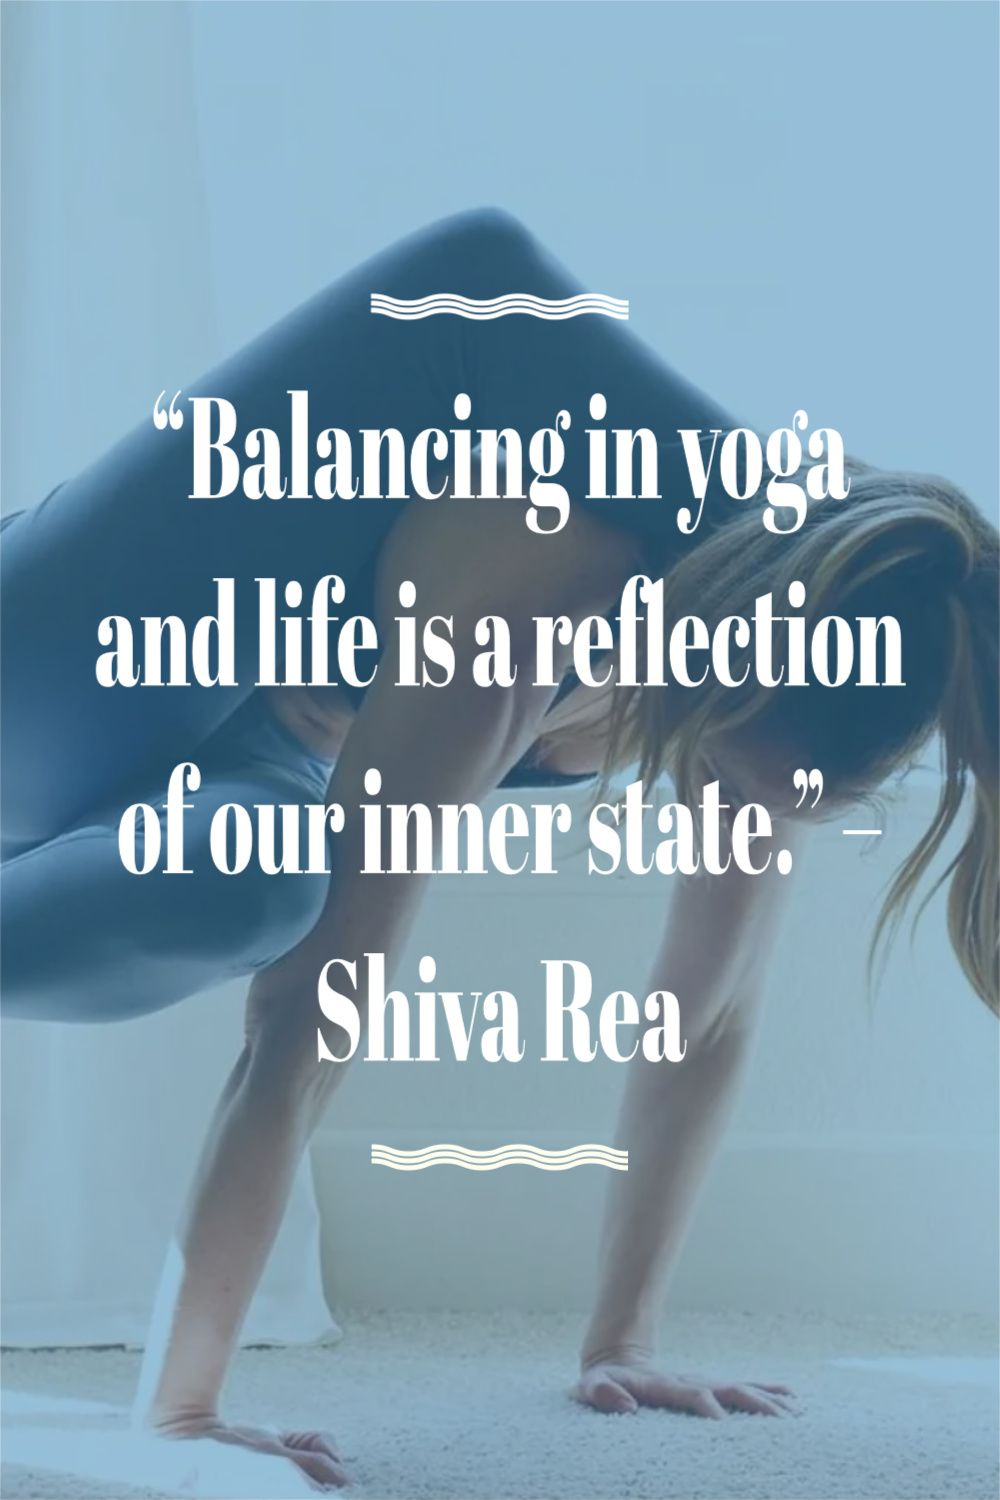 61 Inspiring Yoga Quotes to Help Motivate YOur Next Session